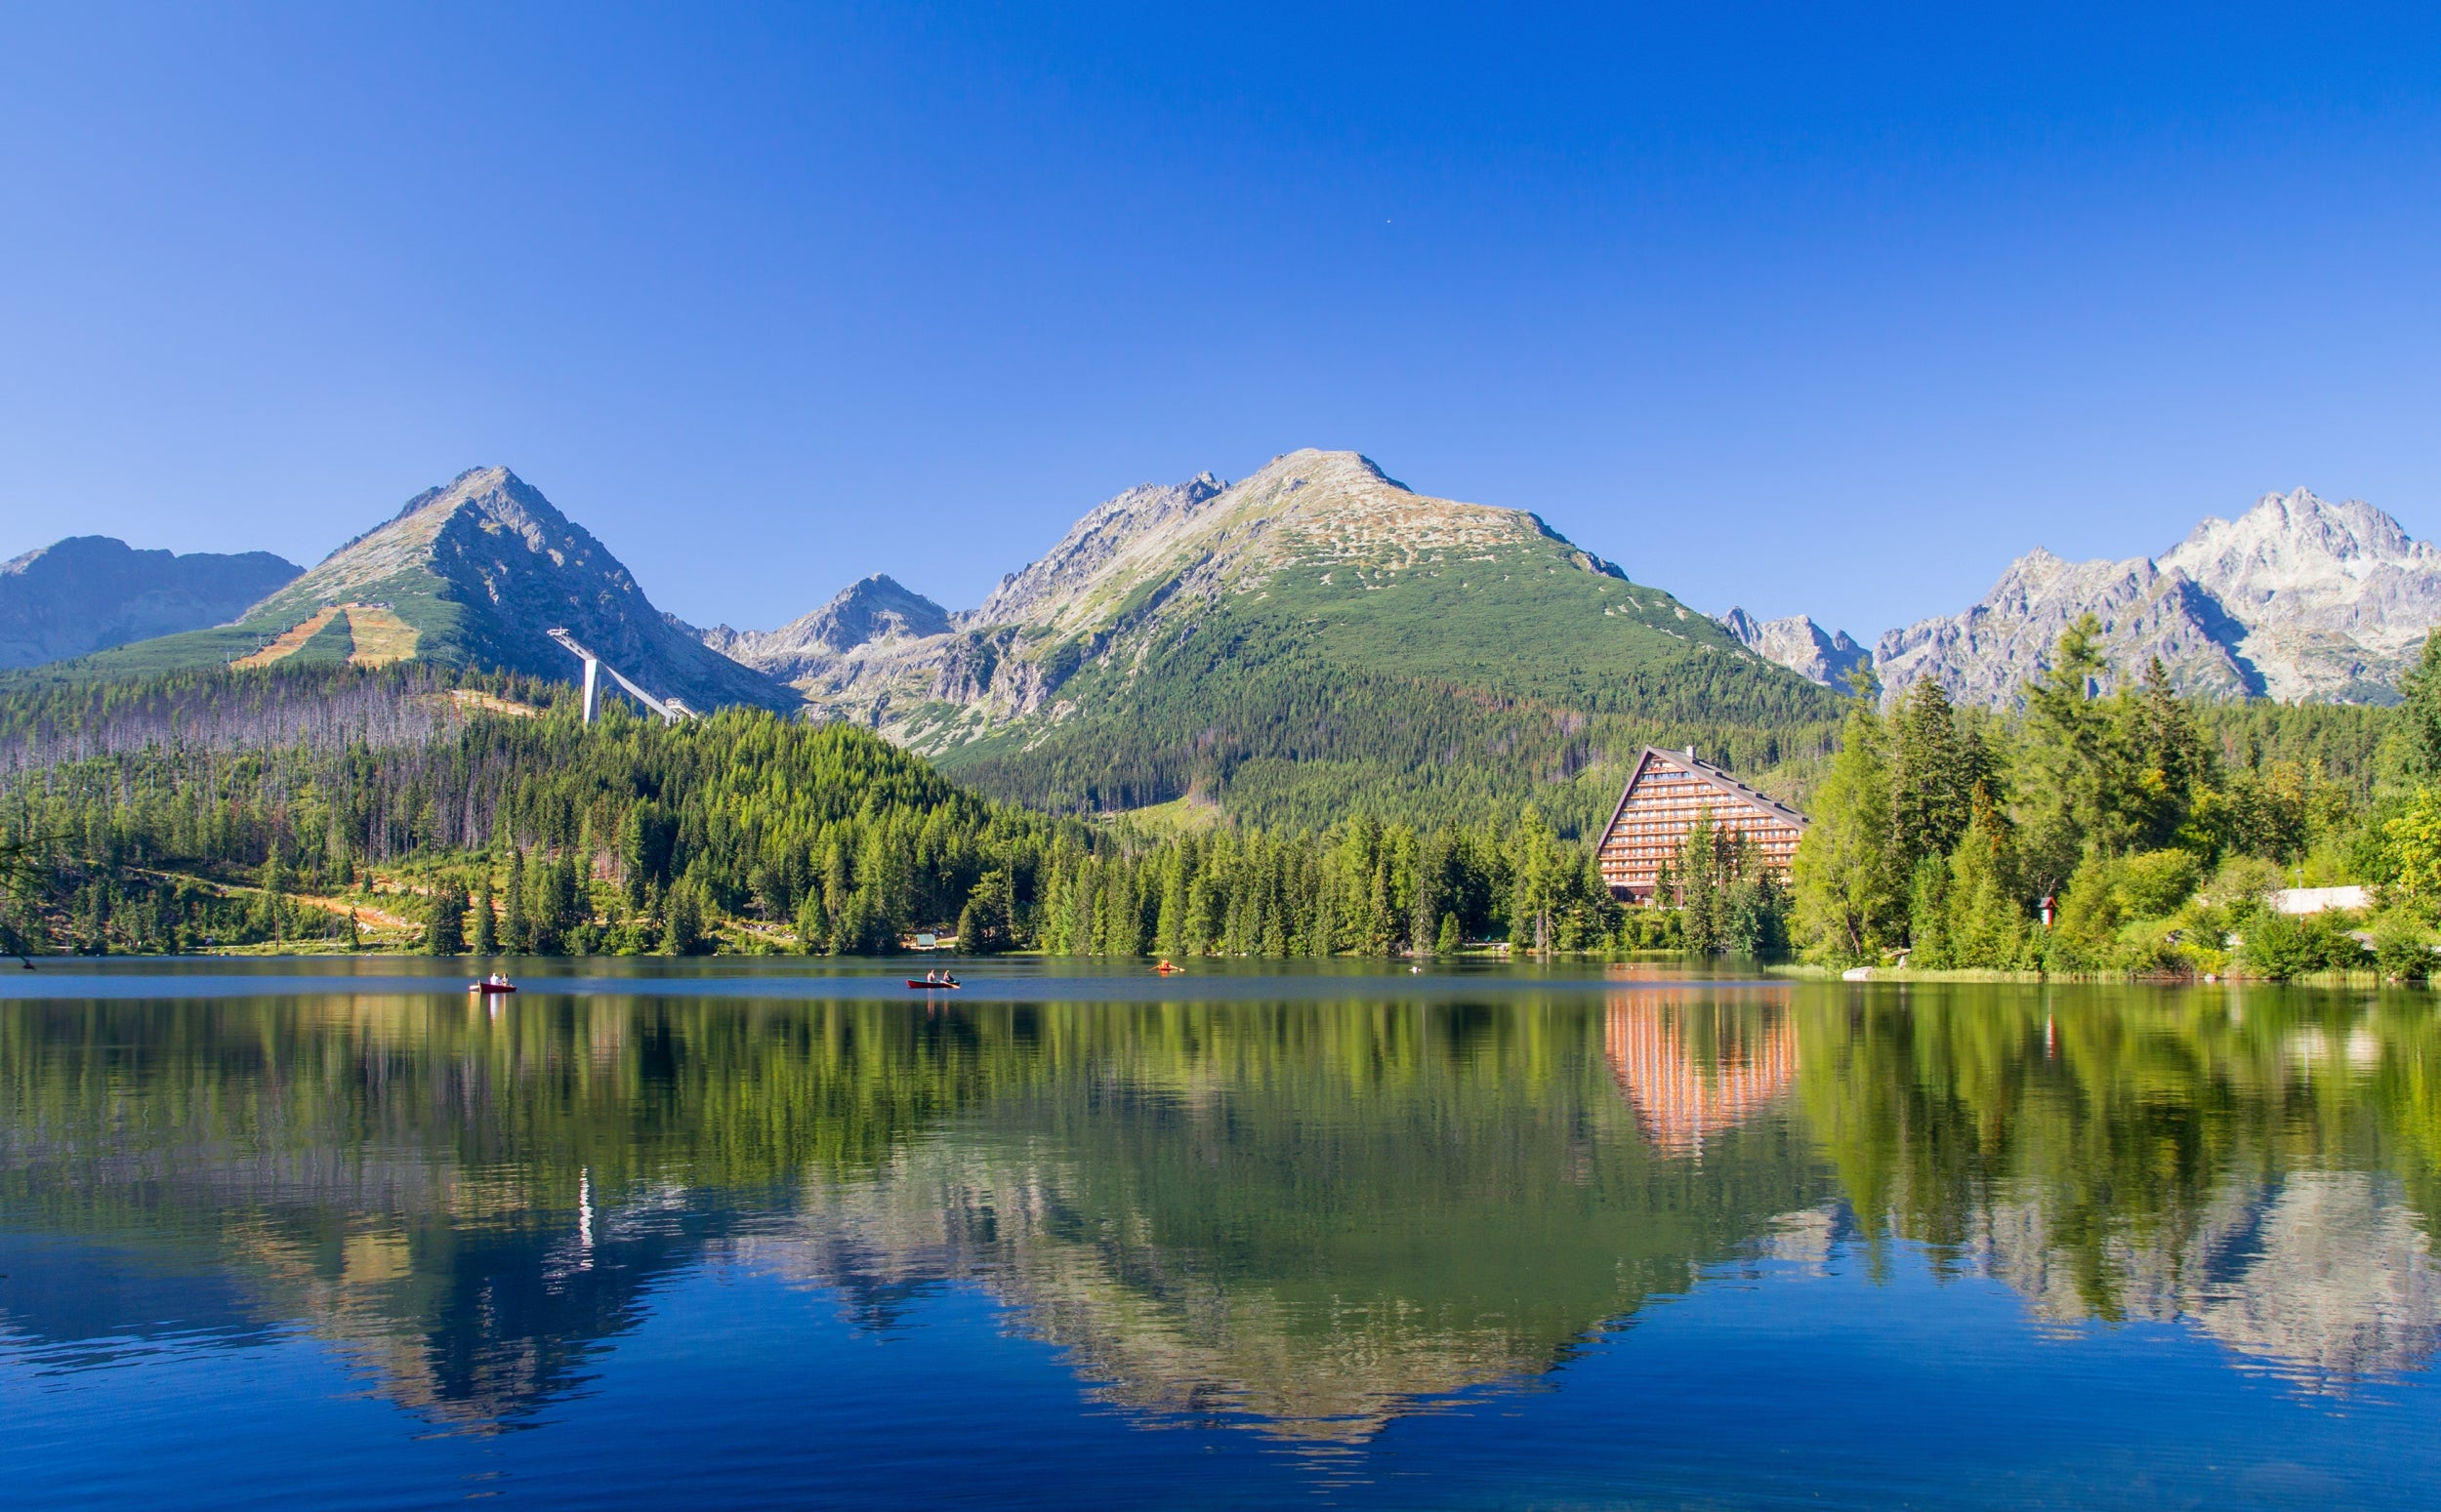 Tatra Mountains, Slovakia: Off-the-grid skiing, rock climbing and more